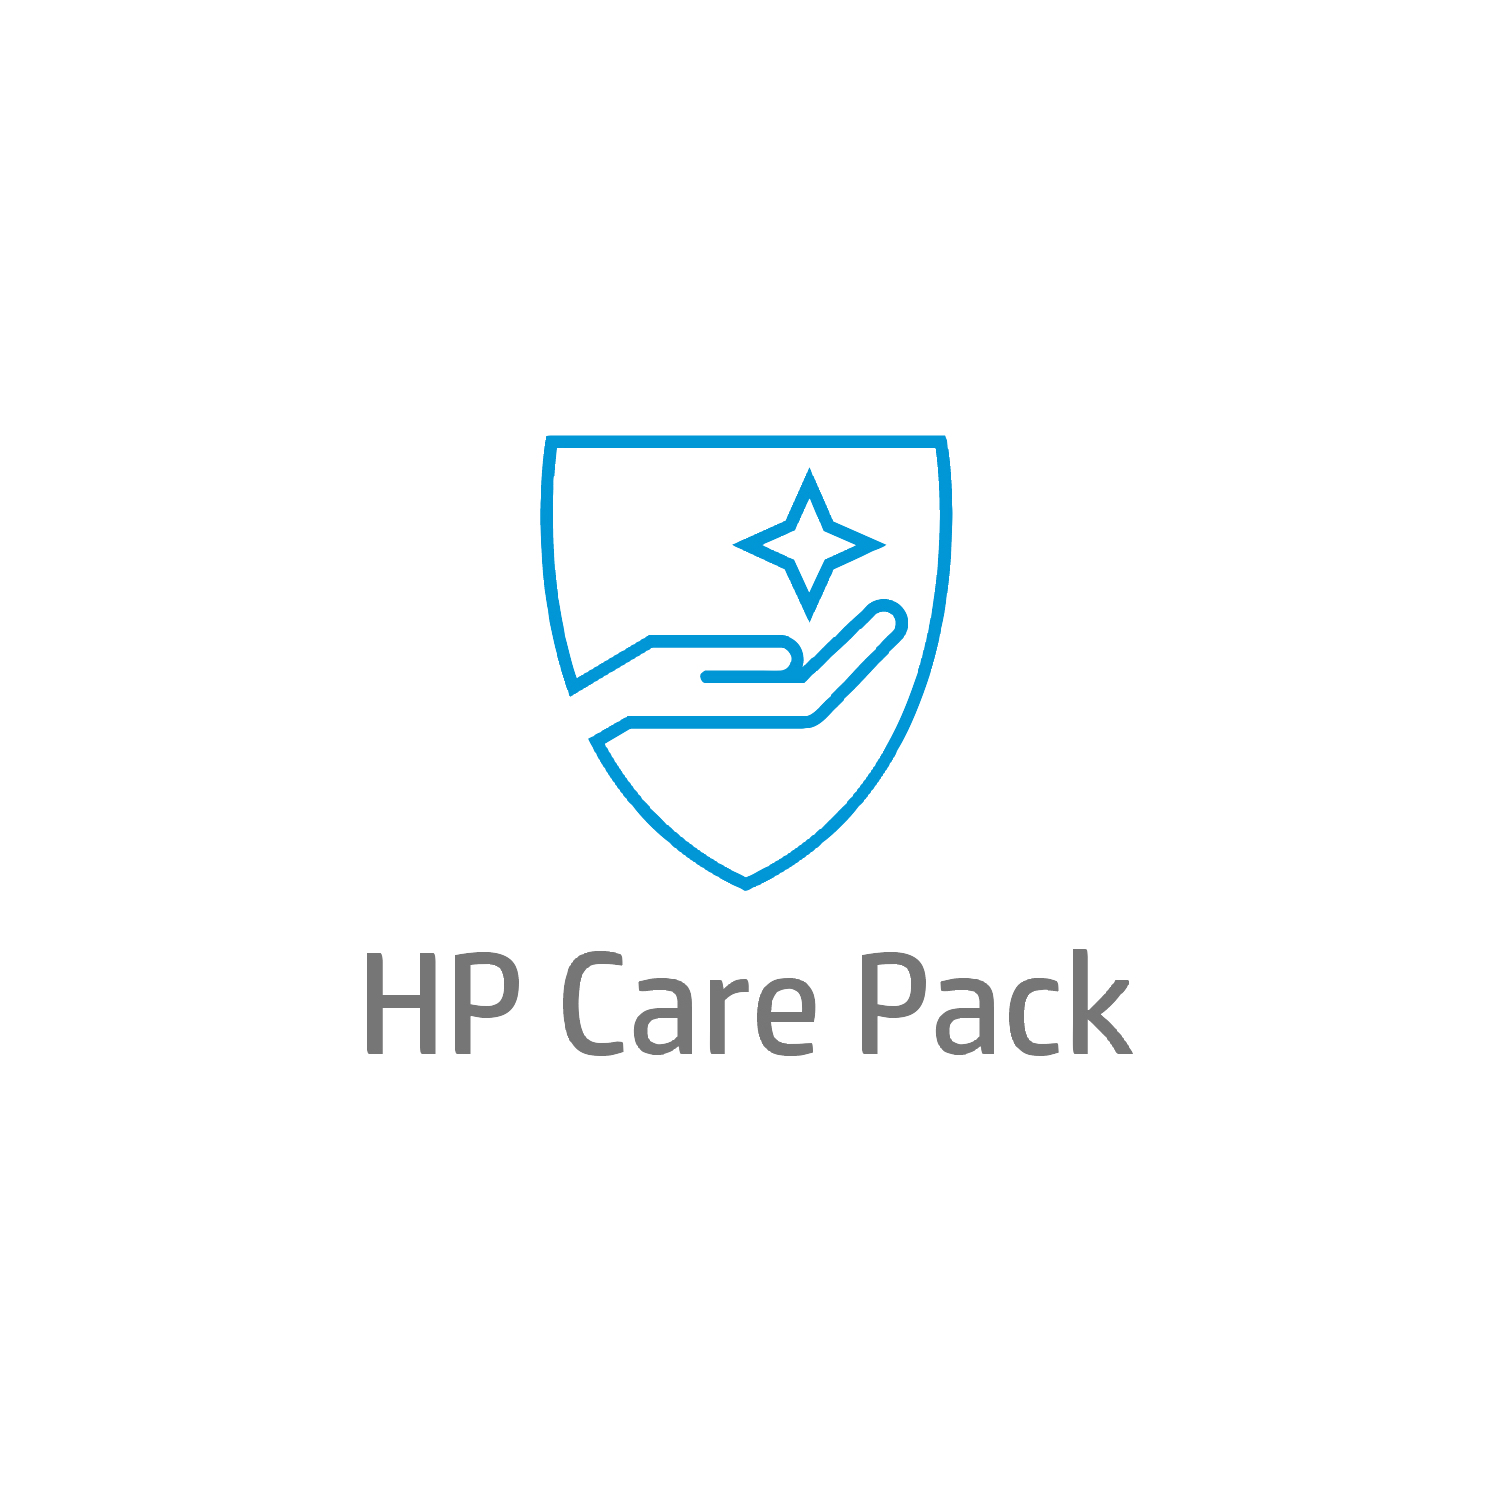 HP 1YR NBD ONSITE OPT CSR DT ONLY H/W SVC